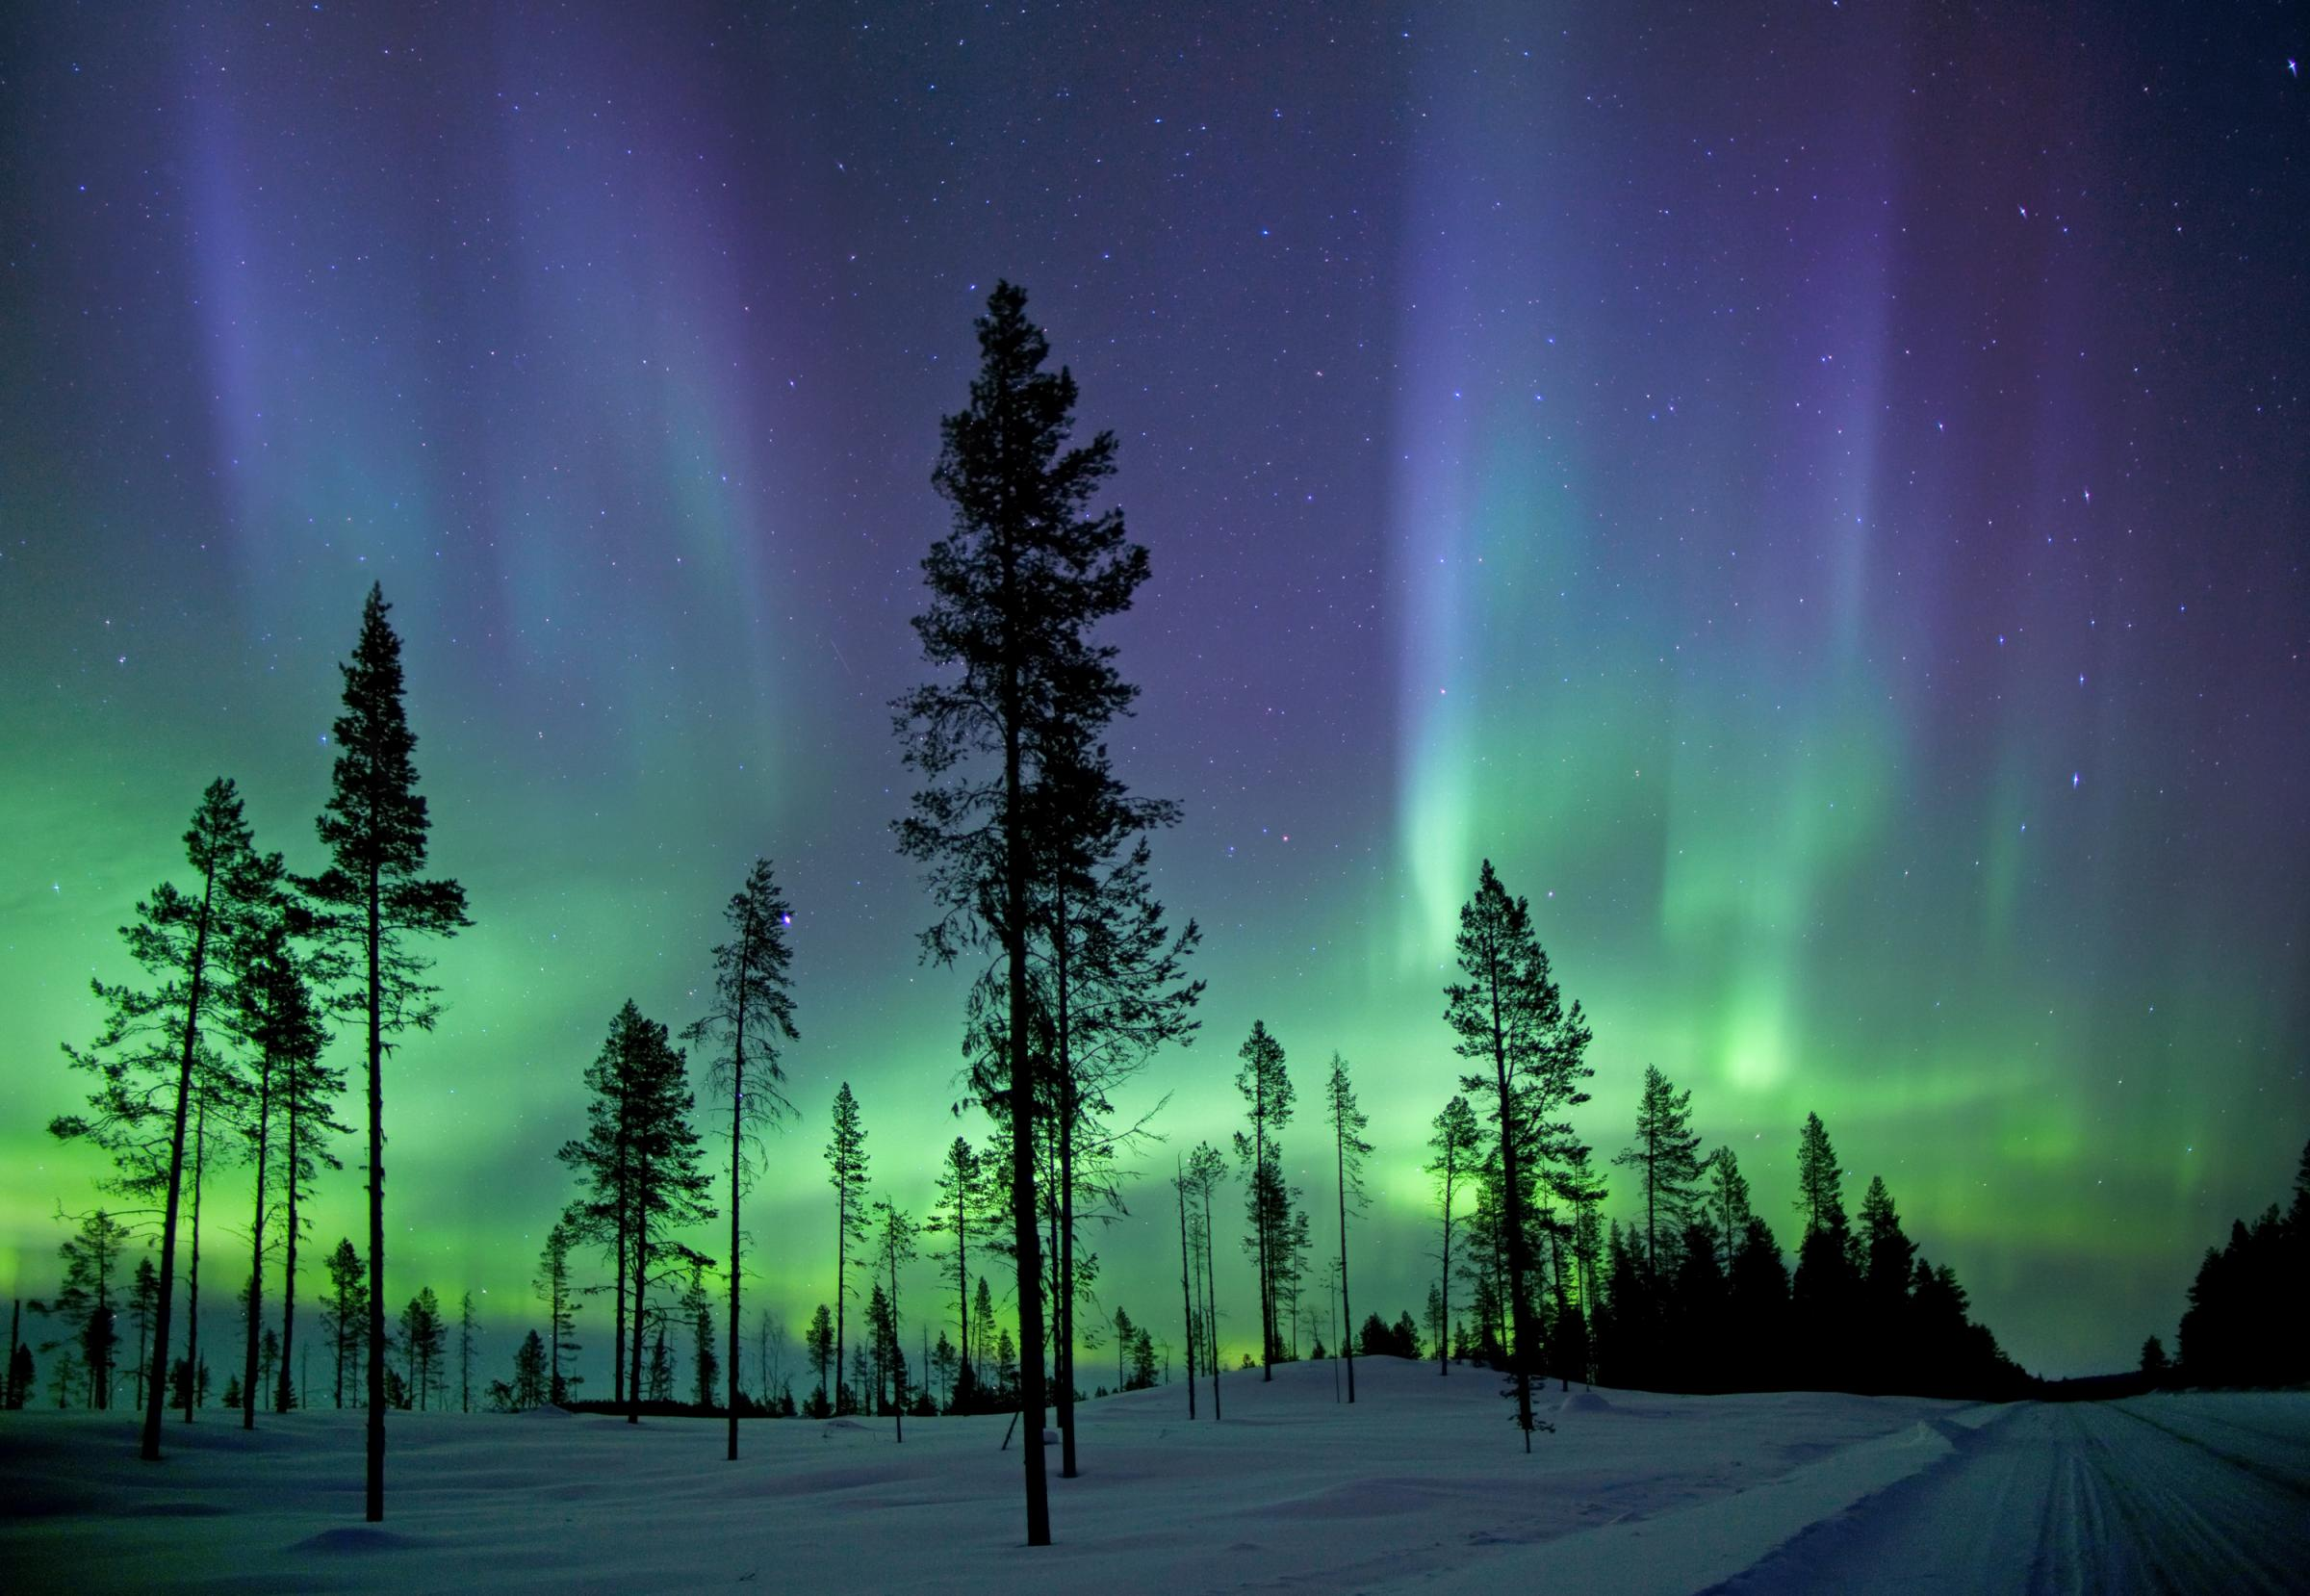 The northern lights are most commonly seen beyond the arctic circle